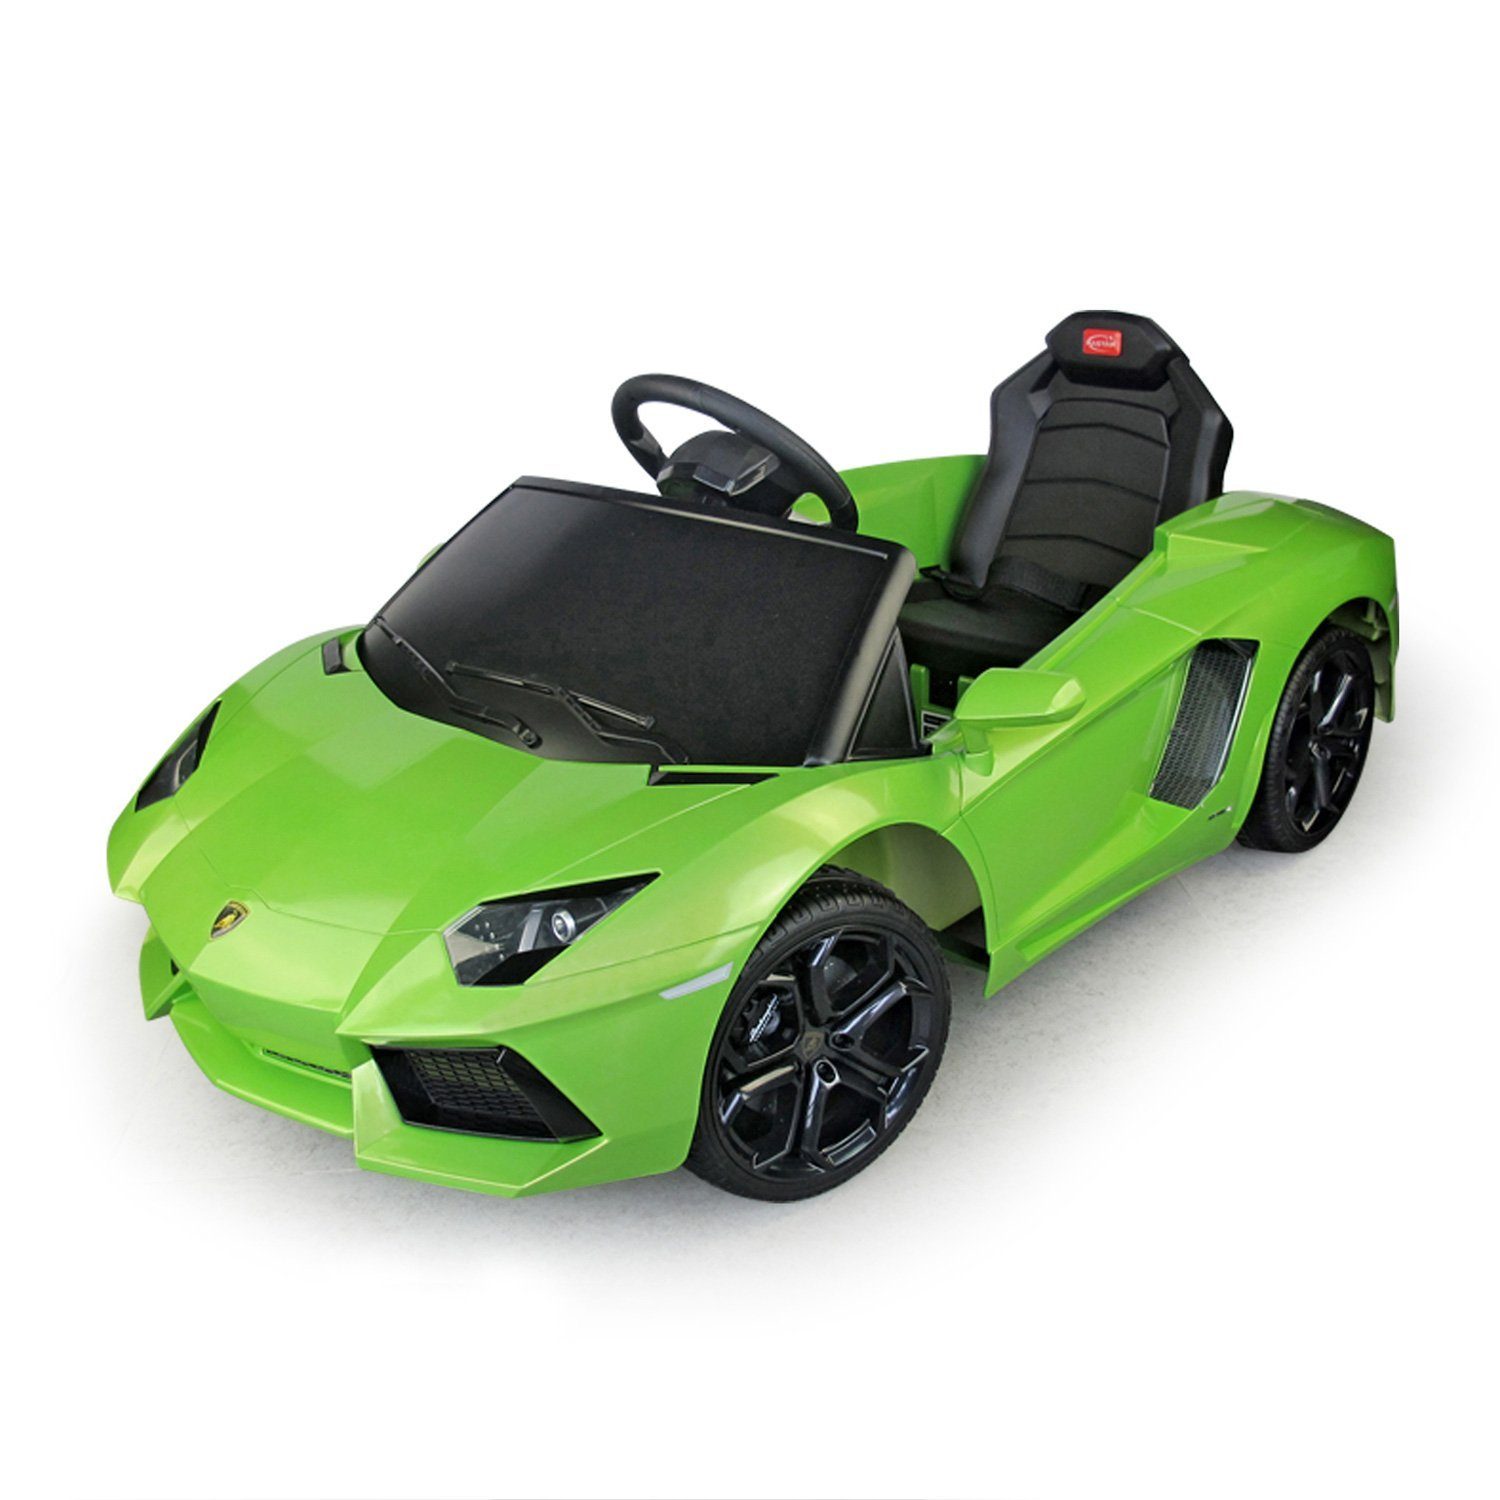 First Cars For Kids Power Wheels Lamborghini Aventador Ride On